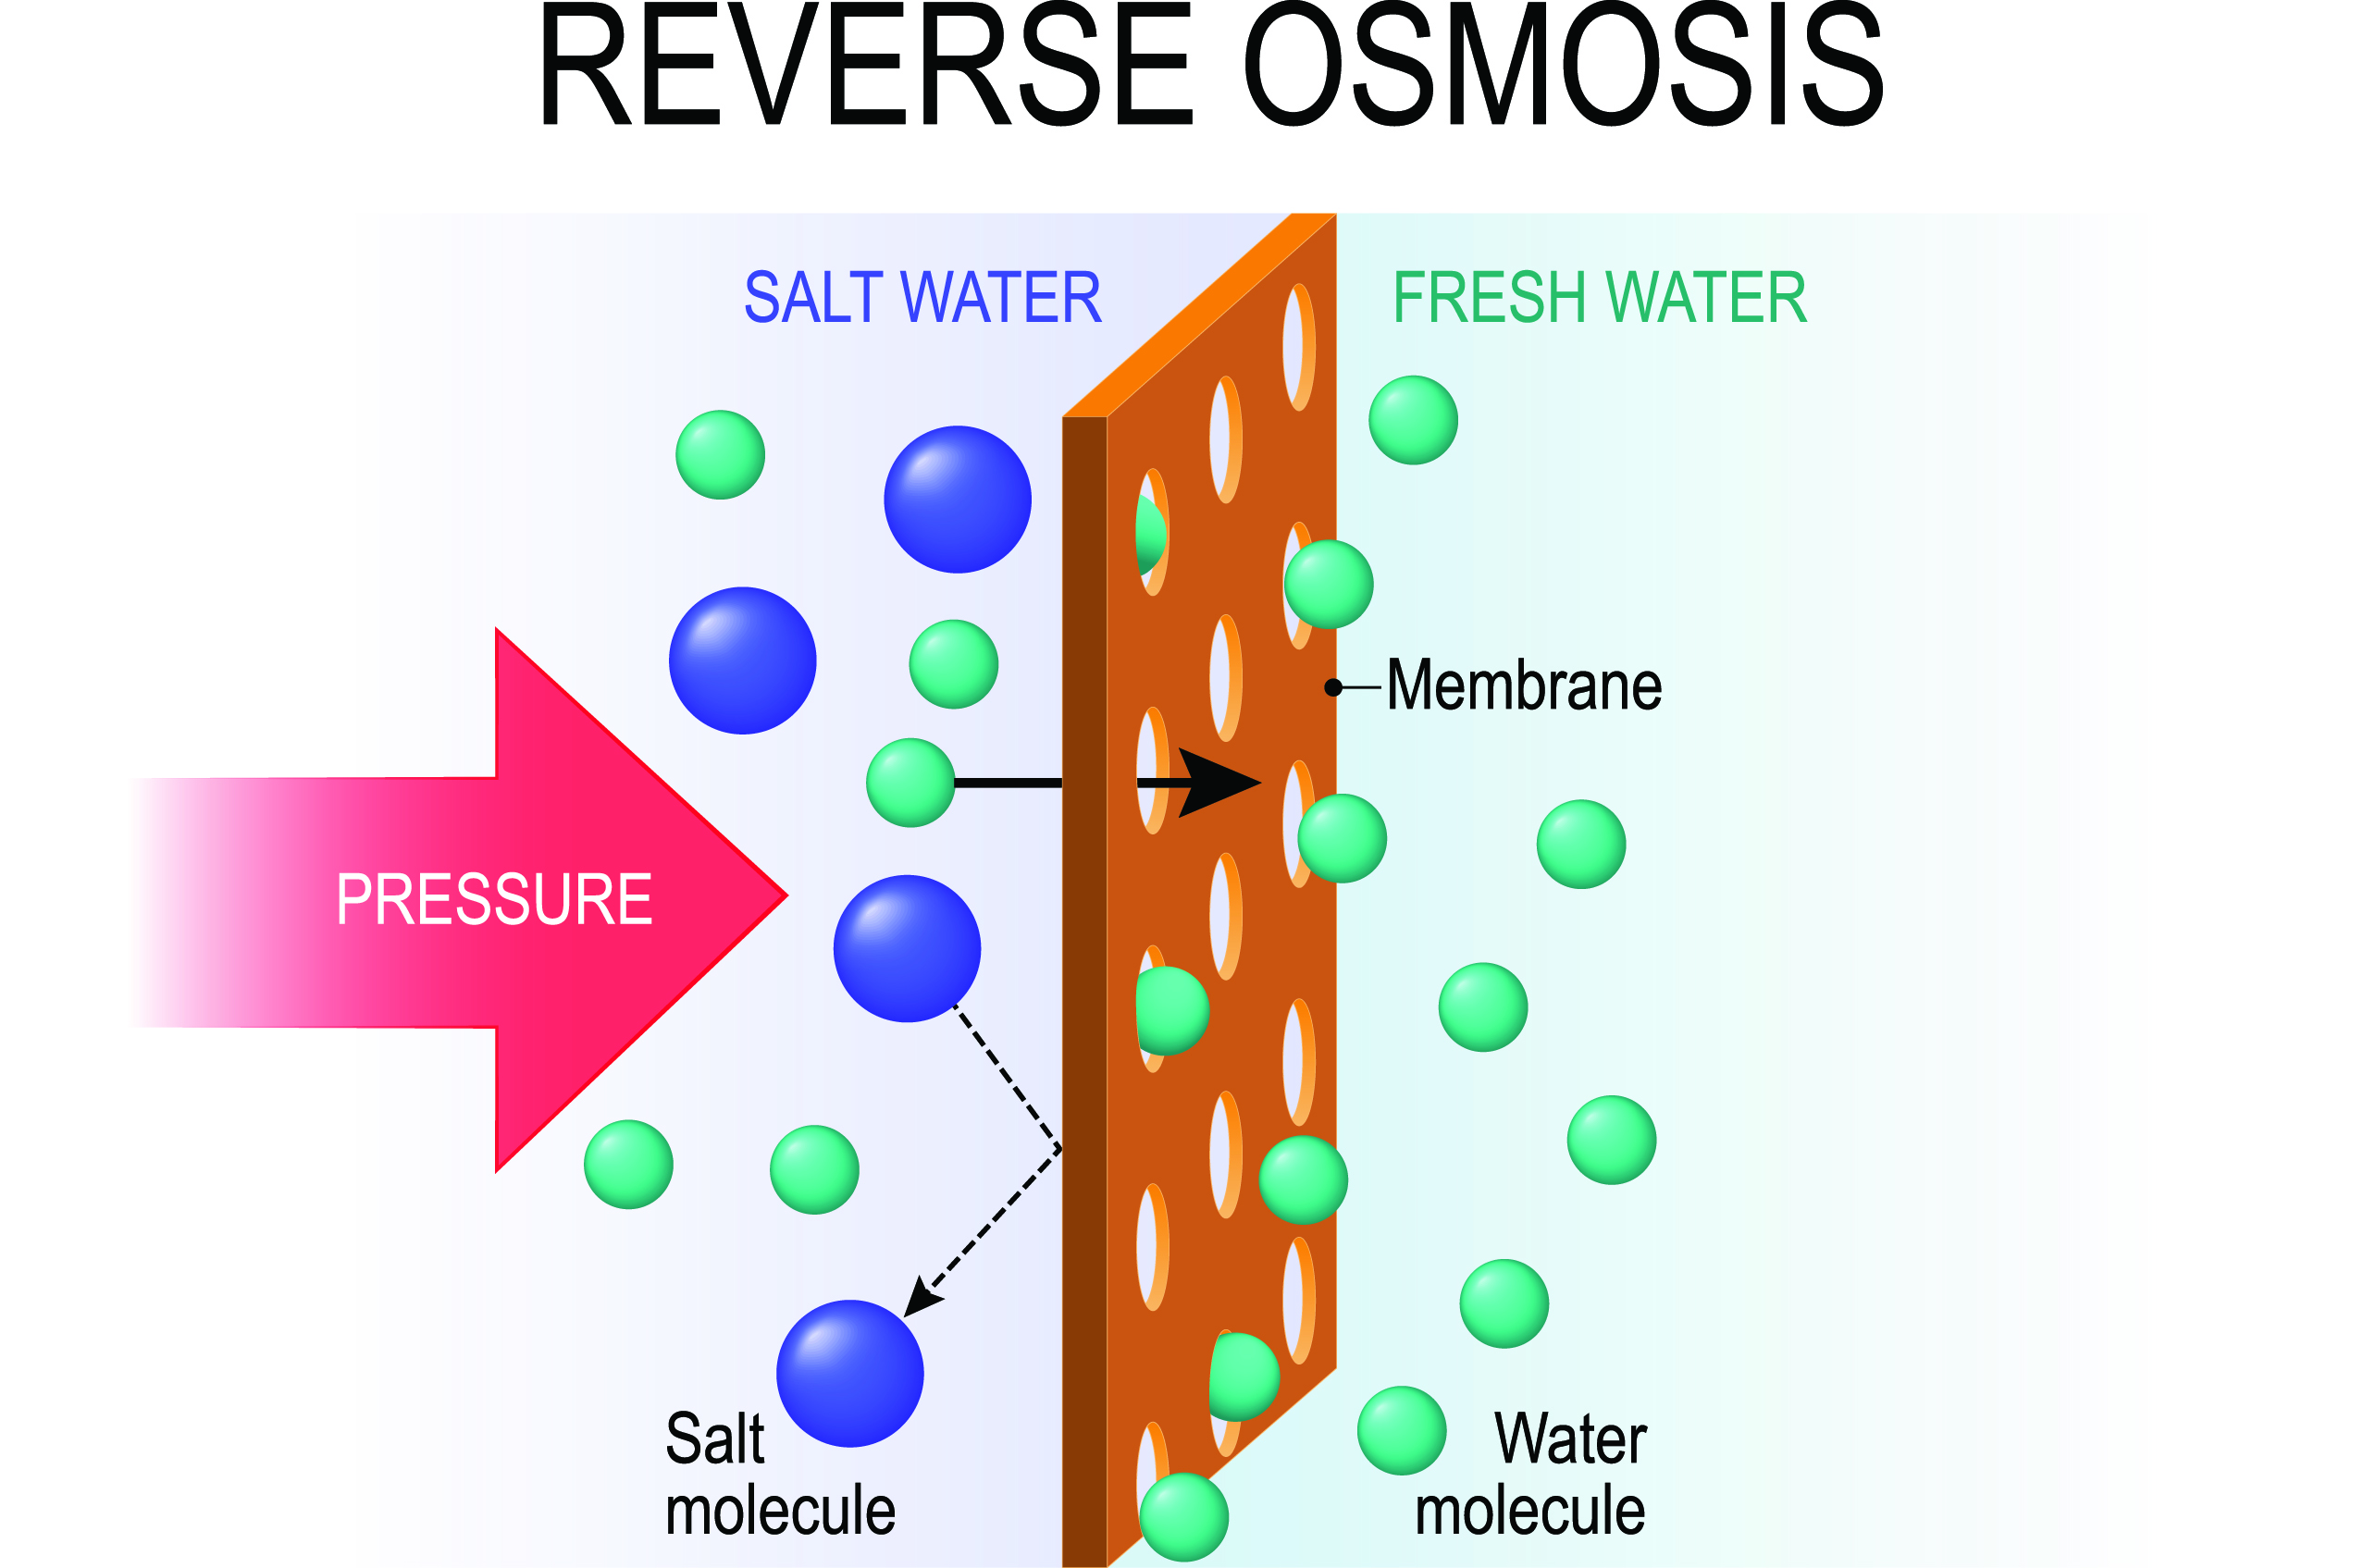 New Findings May Lead To Sea Change In Desalination Technology Diagram Of Water Molecule Illustration Depicting The Process Reverse Osmosis Istock Getty Images Plus